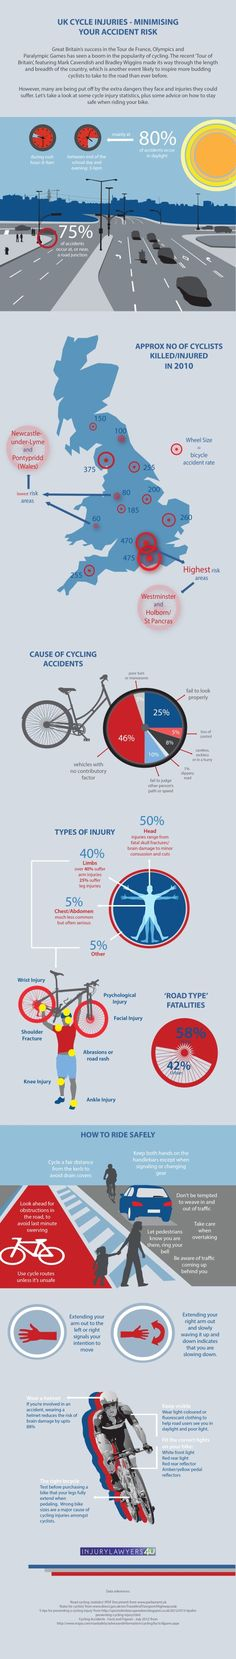 Interested in Cycling? UK Cycle Accident Statistics & Tips for Staying Safe